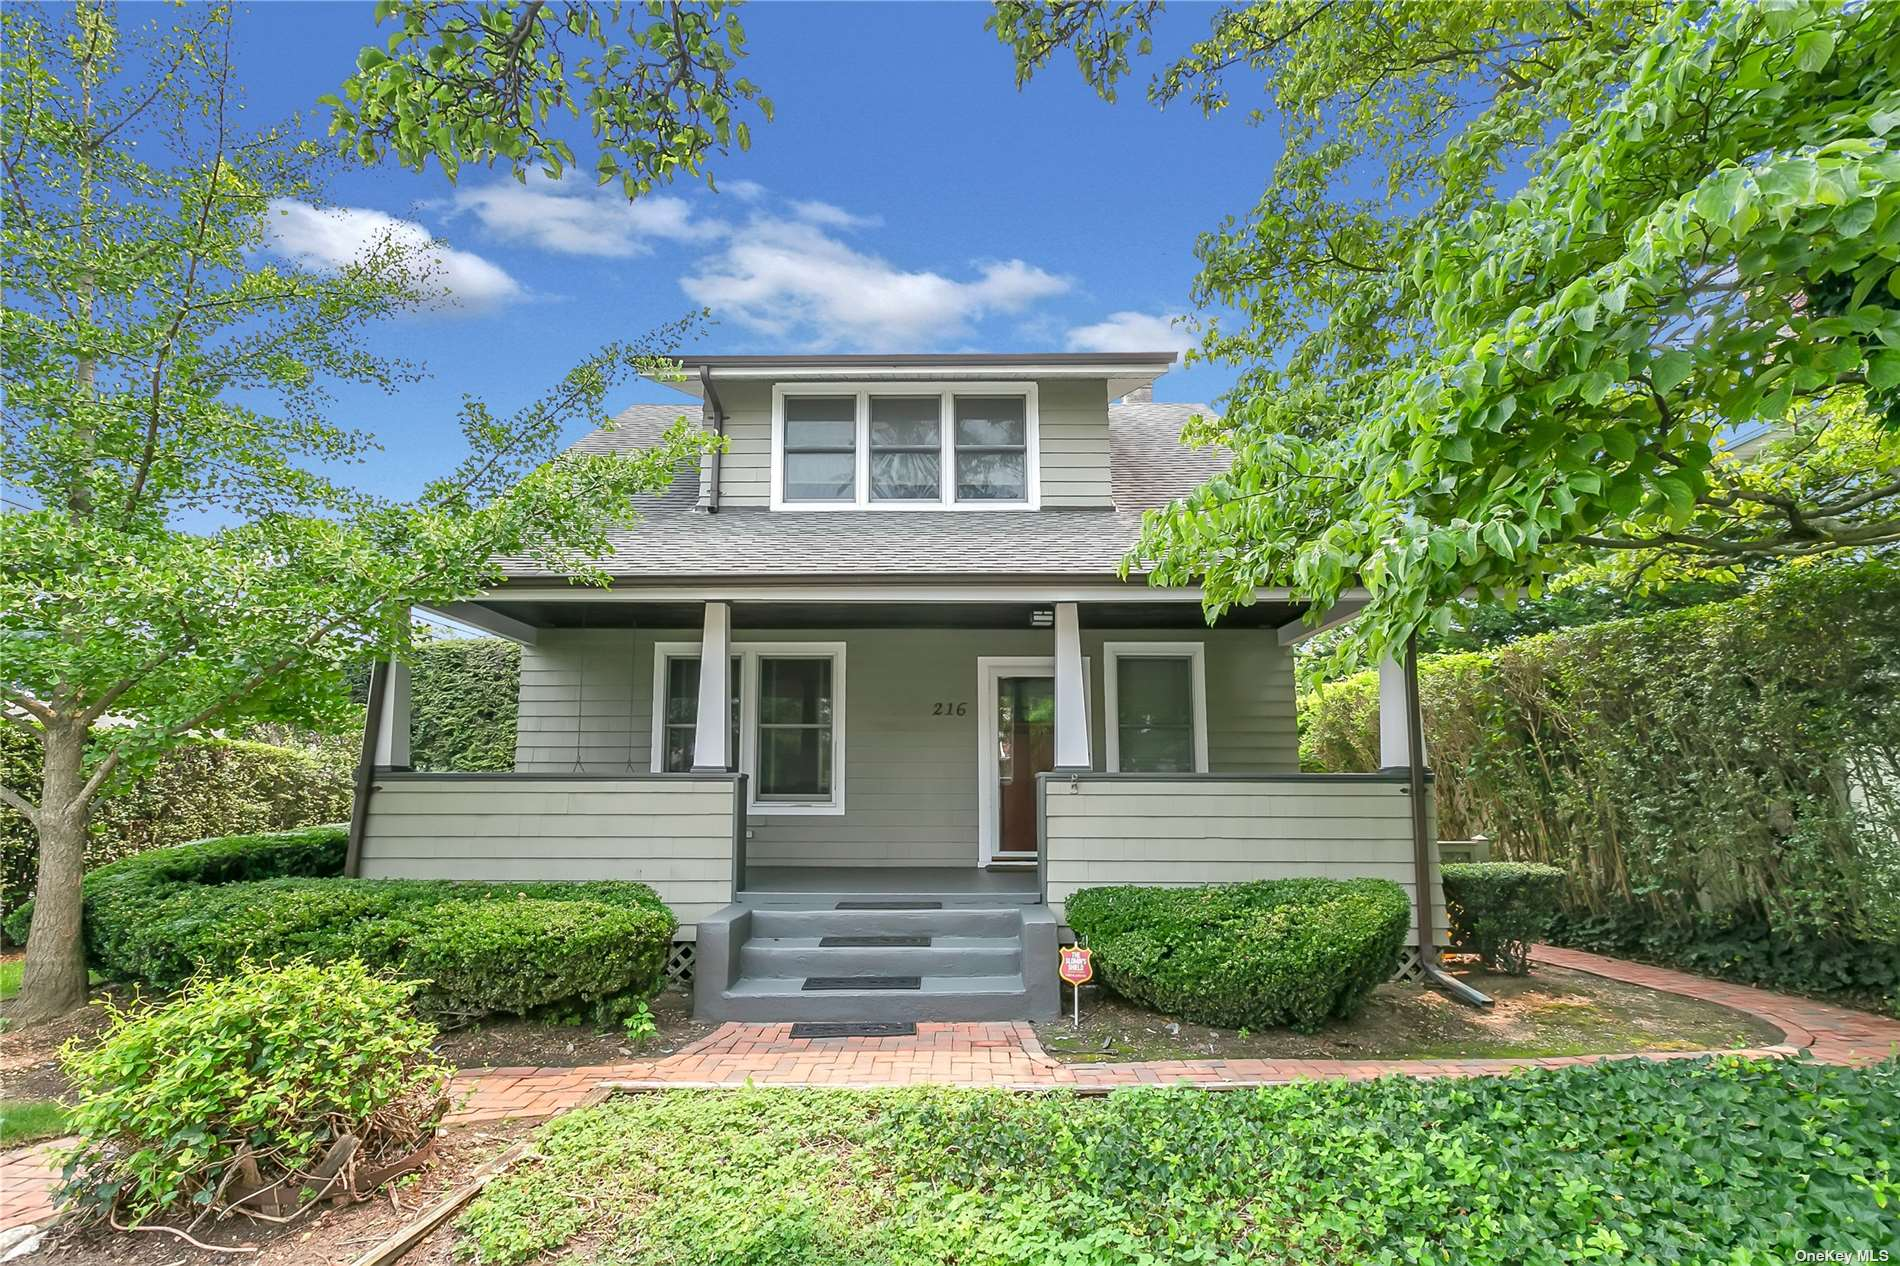 Magnificent, turn of the century Craftsman Colonial w/all the charm of yesteryear, built in 1928, 1690 sq ft  of living space, not including Basement & garage, situated on prime mid-block, Inc. Village, great curb appeal w/beautiful Front Porch w/swing & cedar ext., Living Room & Formal Dining Room both w/refinished hardwood floors, crown moldings & custom built-ins, Eat-in Kitchen w/granite countertops, ceramic tile backsplash, Terracotta tile flr & s/s appliances, 1/2 Bath w/pedestal sink, 2nd Floor 3 BRS all w/refinished hardwood floors & all w/walk-in closets, large ceramic tile Fbth w/vaulted ceiling & skylight, pull-down Attic w/hideaway stairs, Basement finished Family Rm w/wall-to-wall carpeting, all windows have been replaced, refin. hardwood flrs, crown moldings, custom built-ins, wainscoting, CAC, alarm system, 200 amps, gas heat, sep. h/w heater, 2 car det. garage, o/s priv. fenced backyard, 6ft PVC fencing, brick patio, close to town, shopping & R/R, Northside Elem.